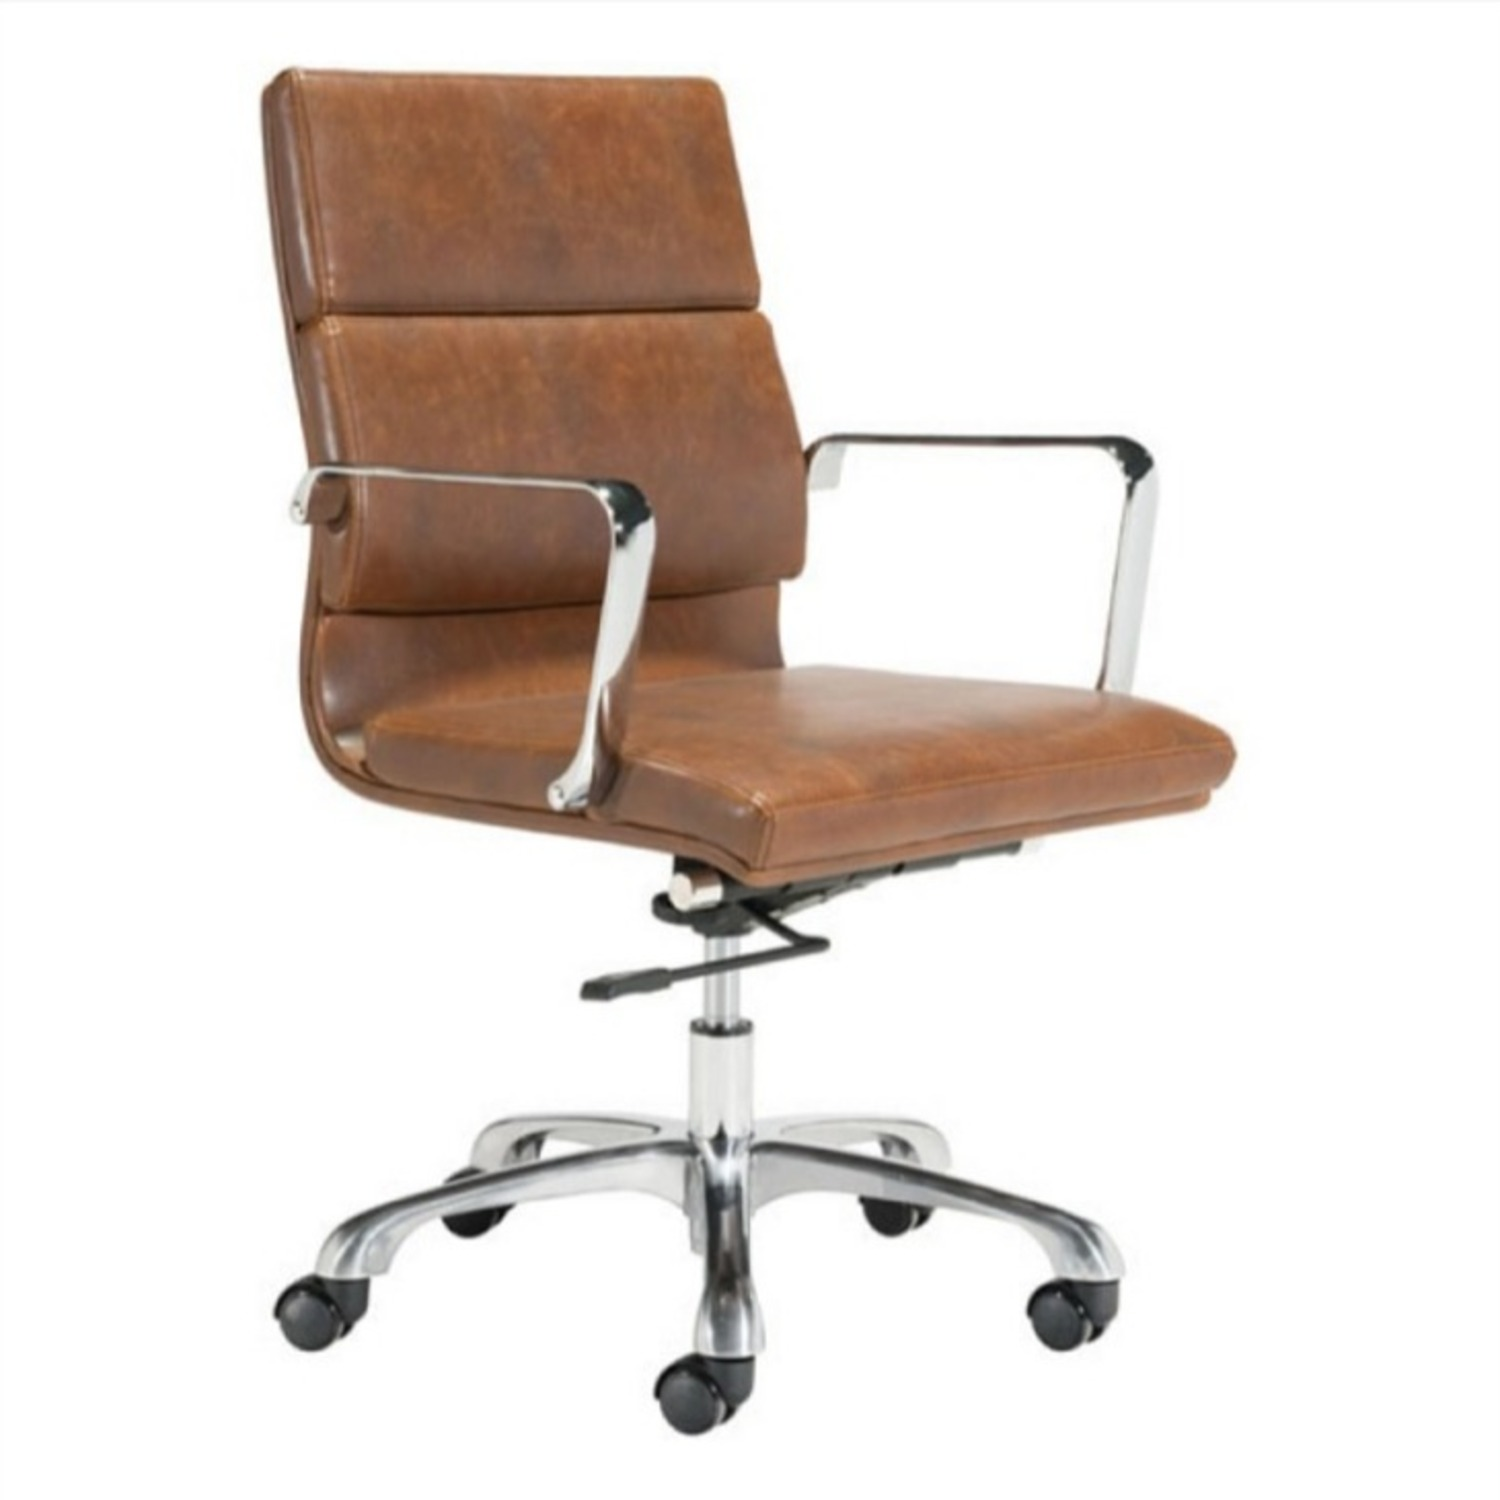 Office Chair In Brown Faux Leather Seat & Back - image-0